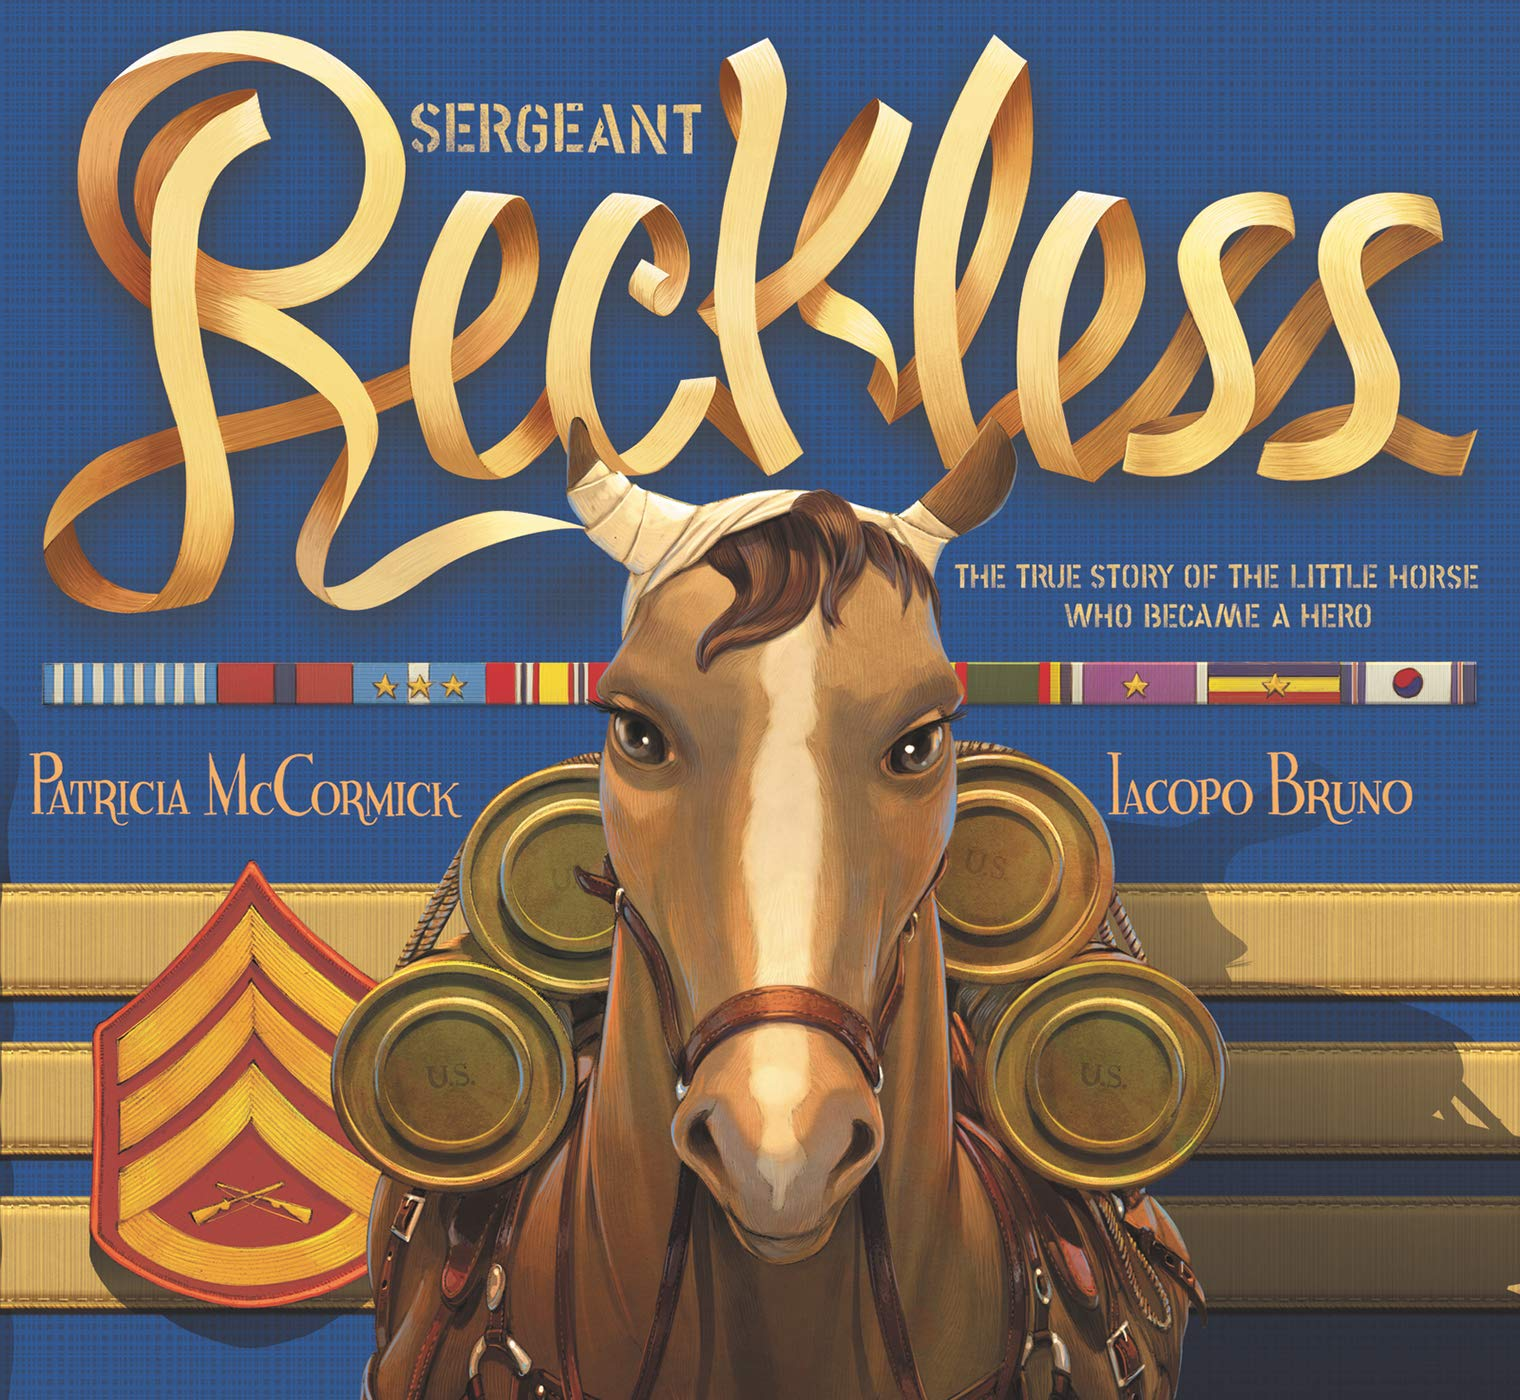 Sergeant Reckless: The True Story of the Little Horse Who Became a Hero:  McCormick, Patricia, Bruno, Iacopo: 9780062292605: Amazon.com: Books